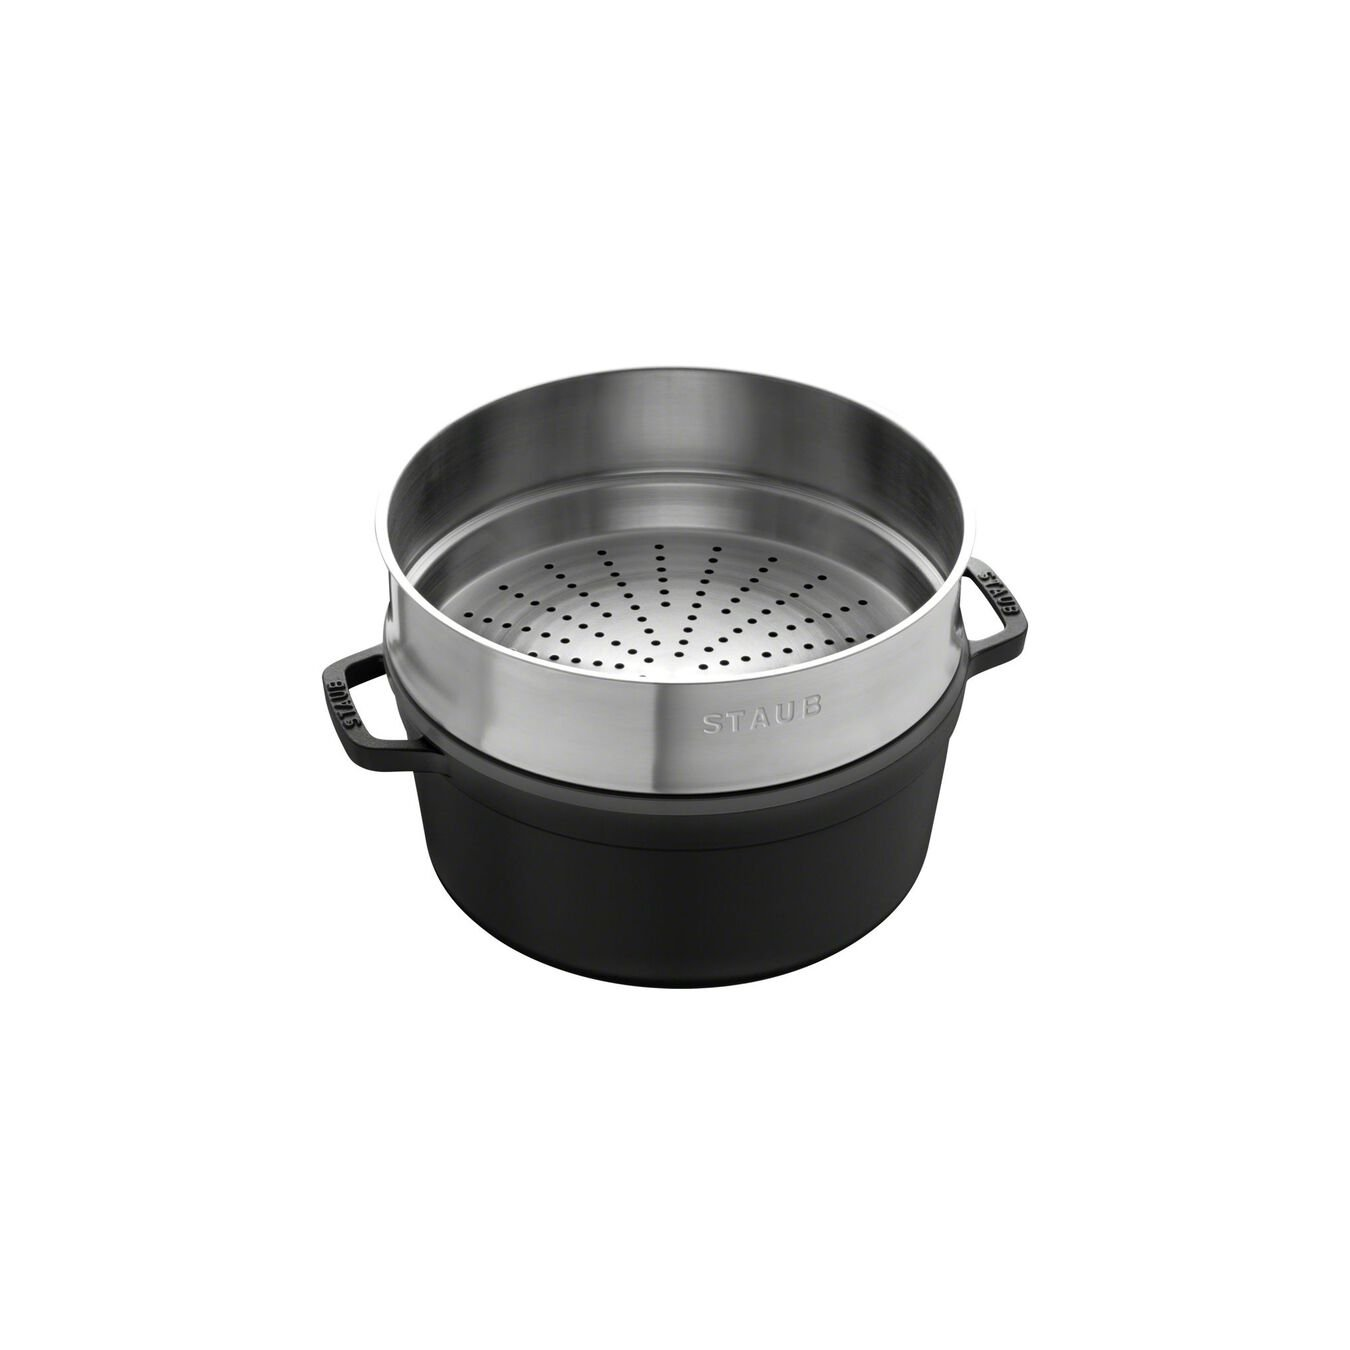 5.25 l Cast iron round Cocotte with steamer, Black,,large 2